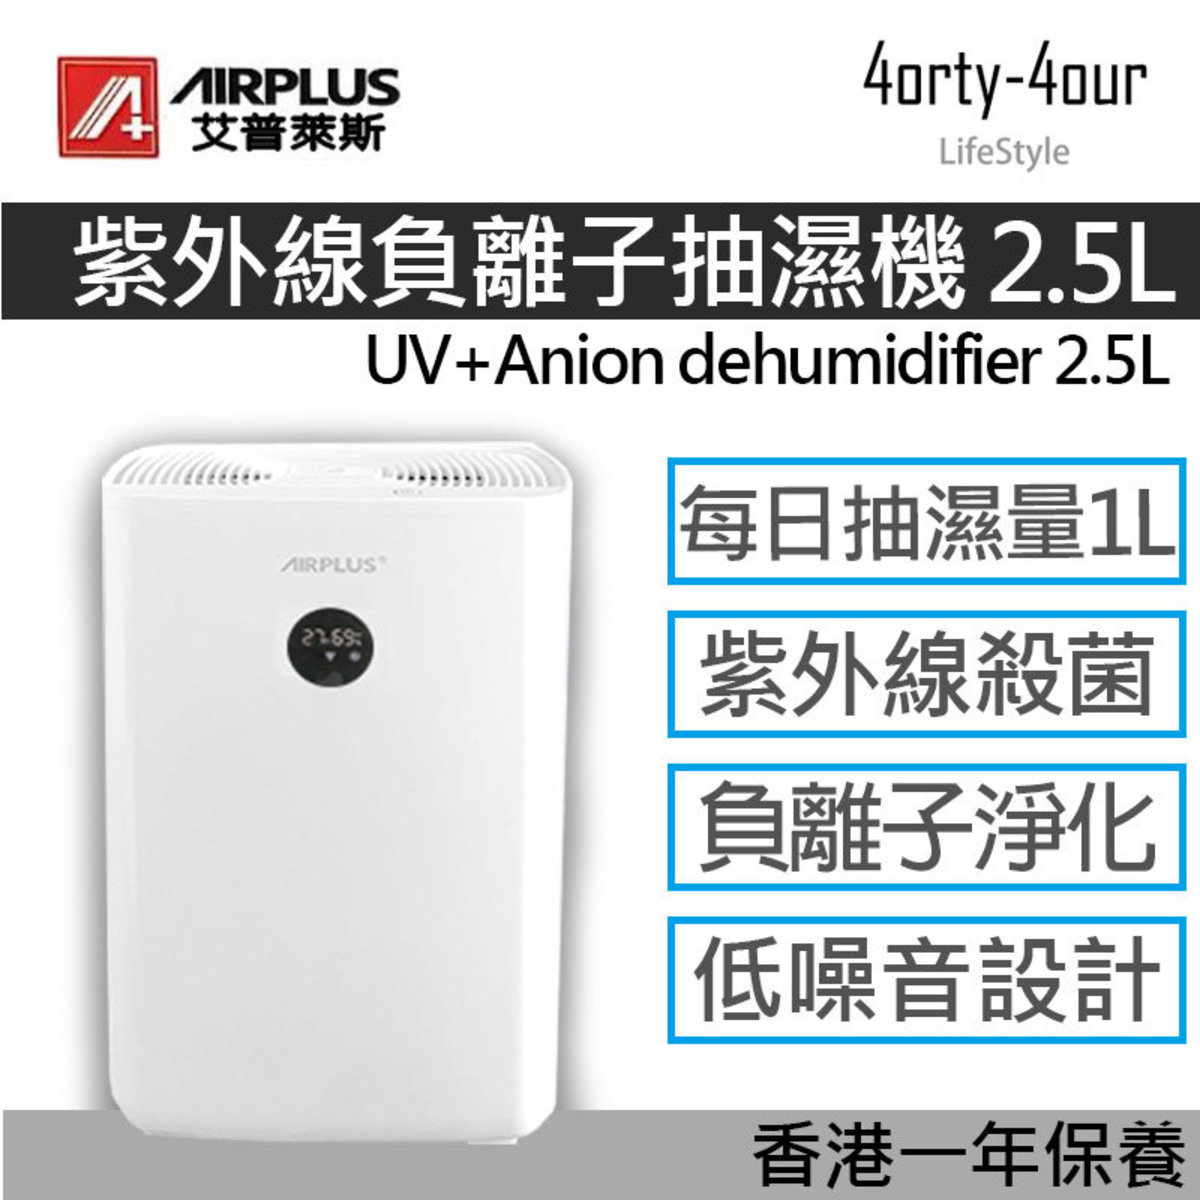 AIRPLUS Household UV + Anion Dehumidifier 2.5 L